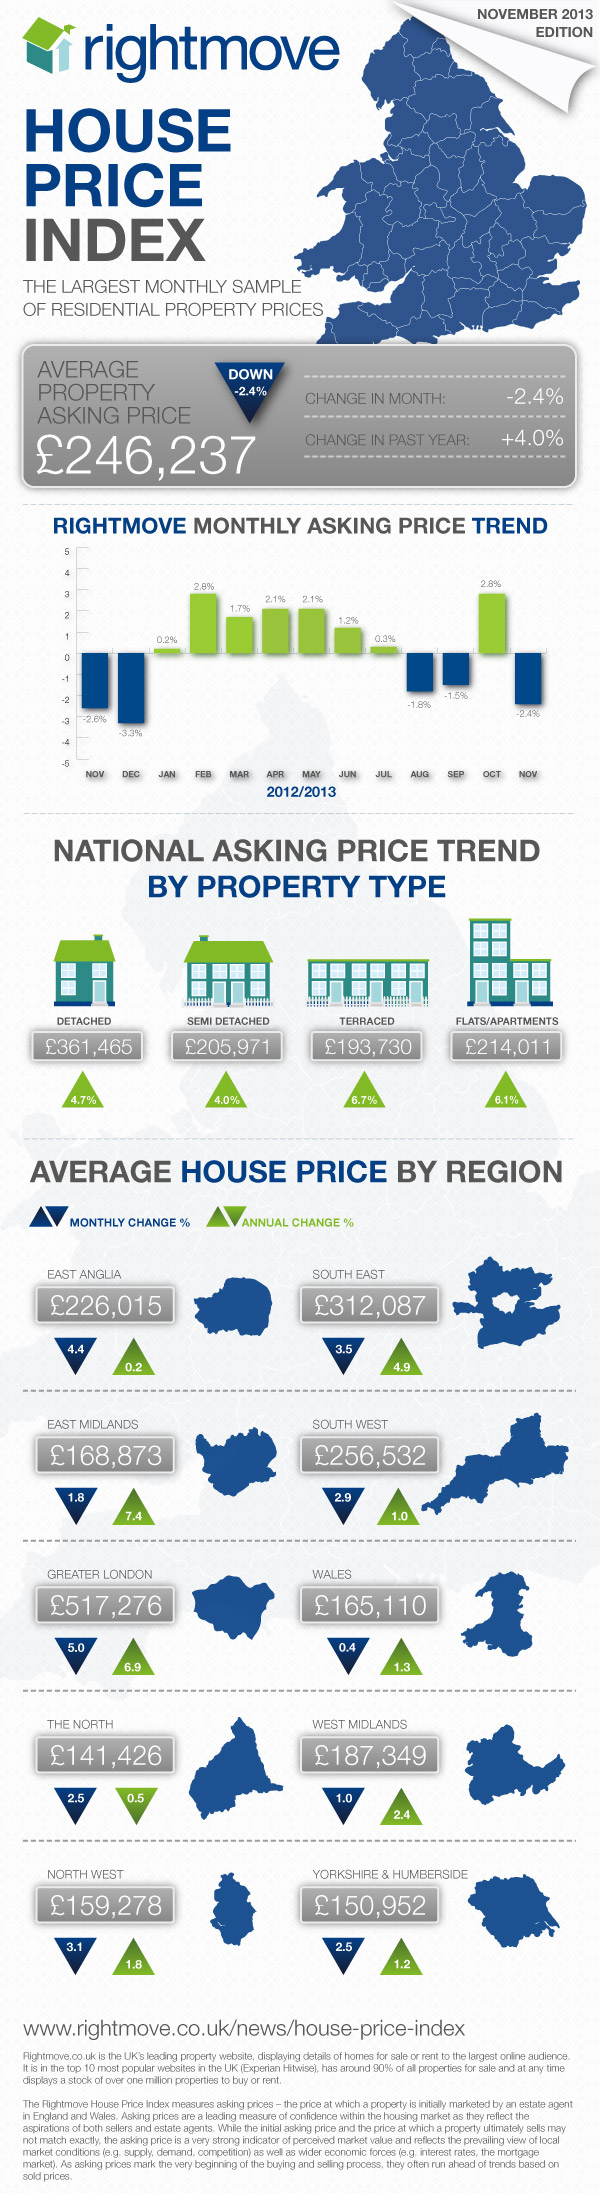 November House Price Index Infographic